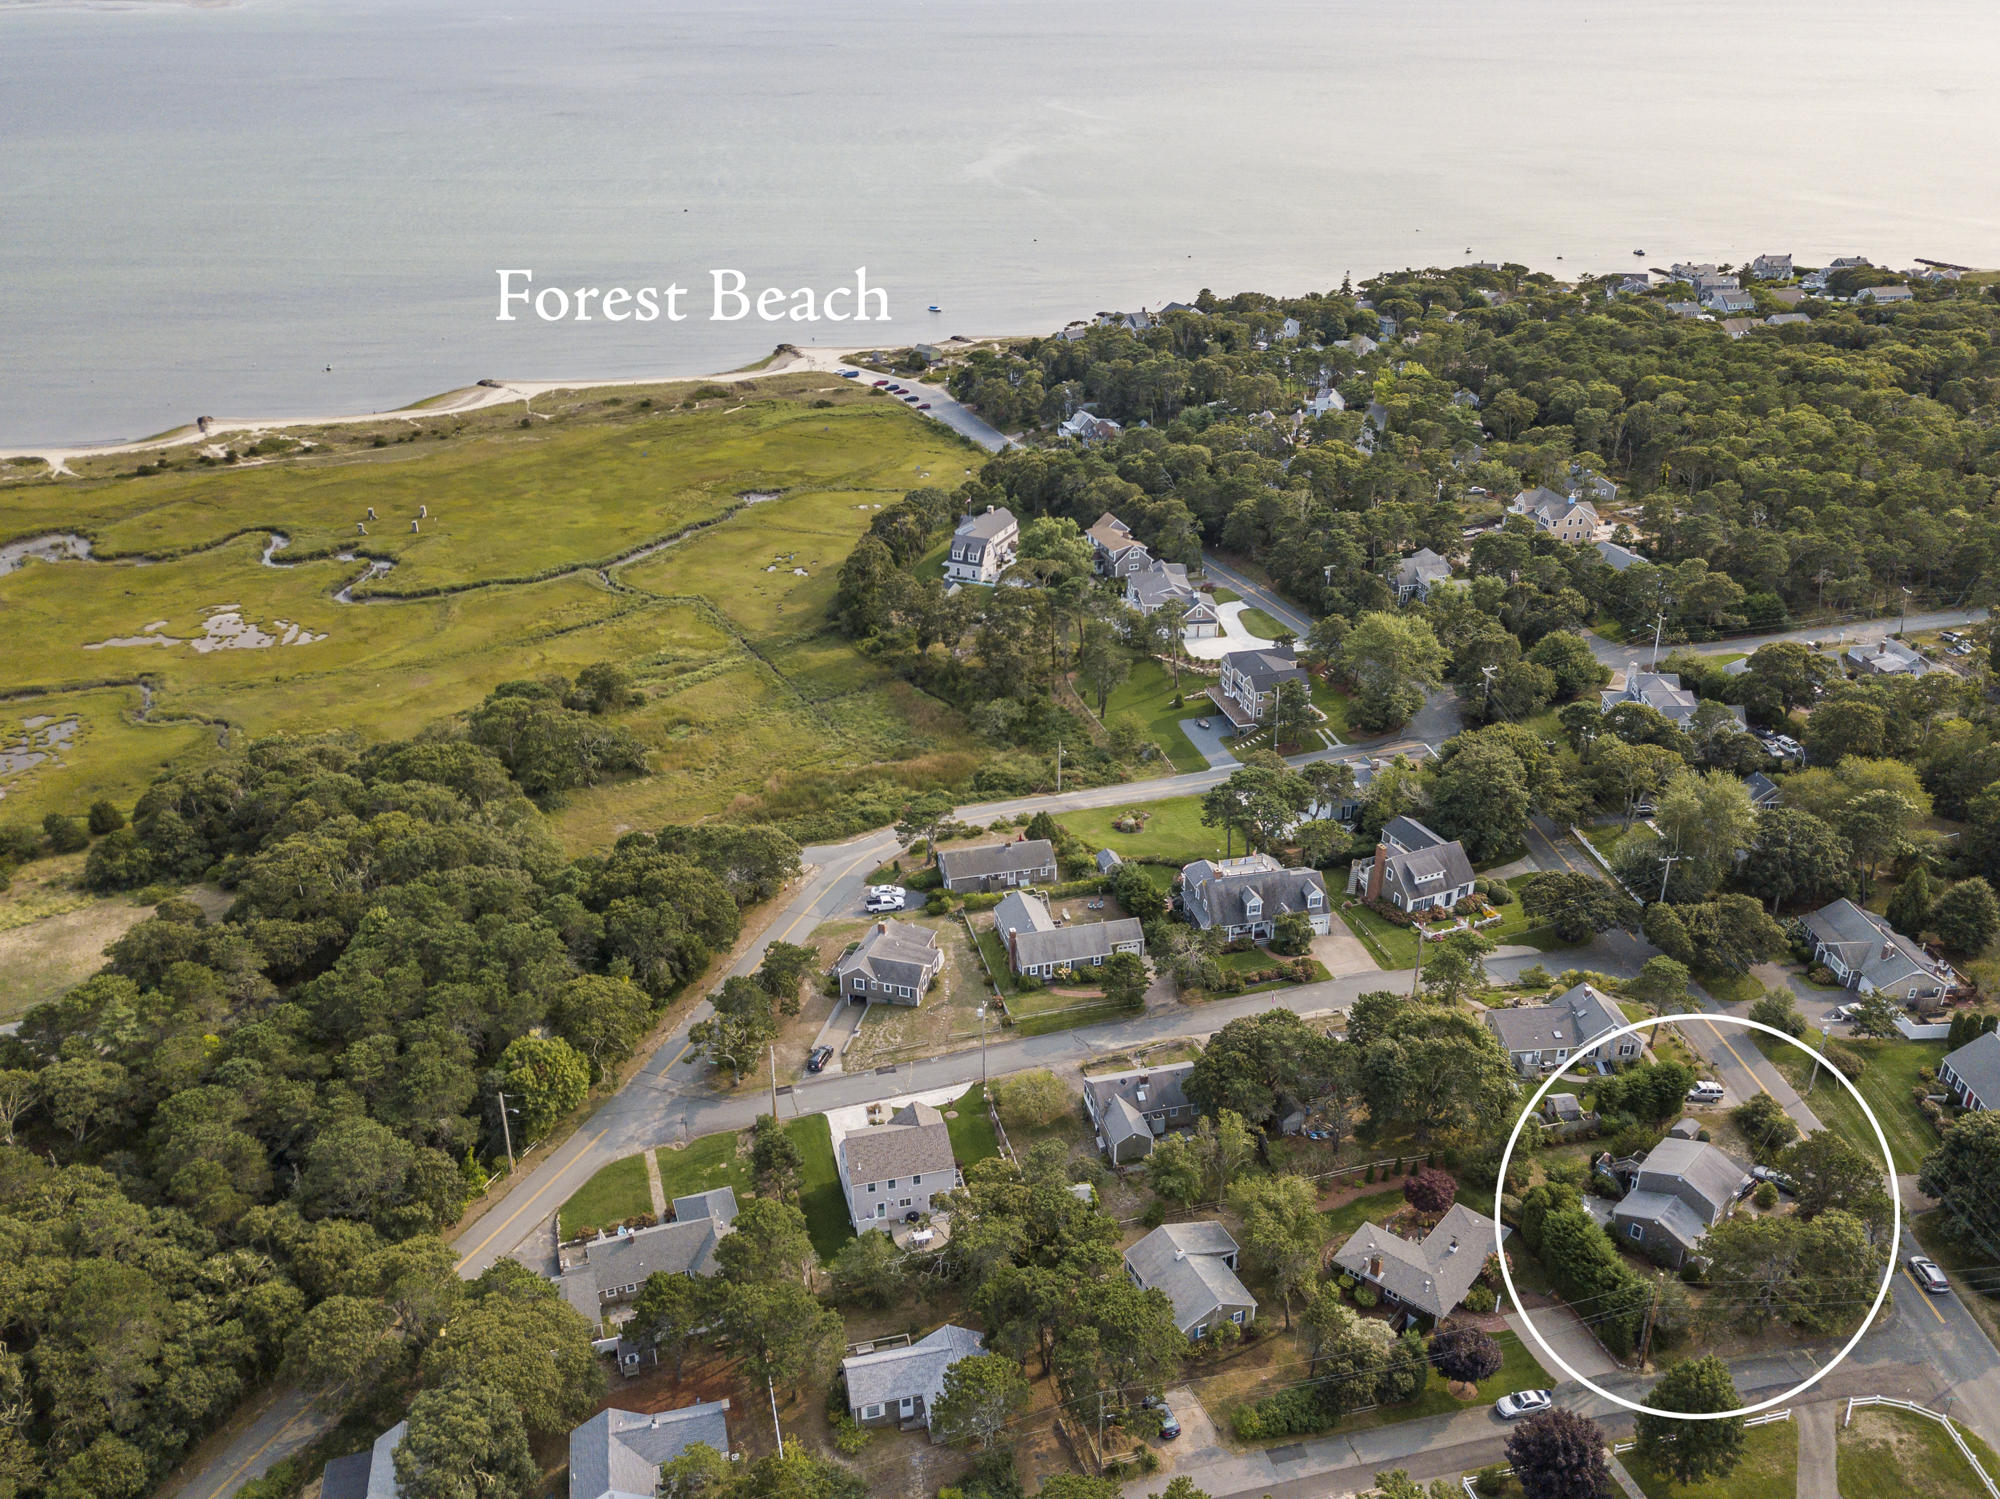 209 Forest Beach Road, South Chatham MA, 02659 - slide 3